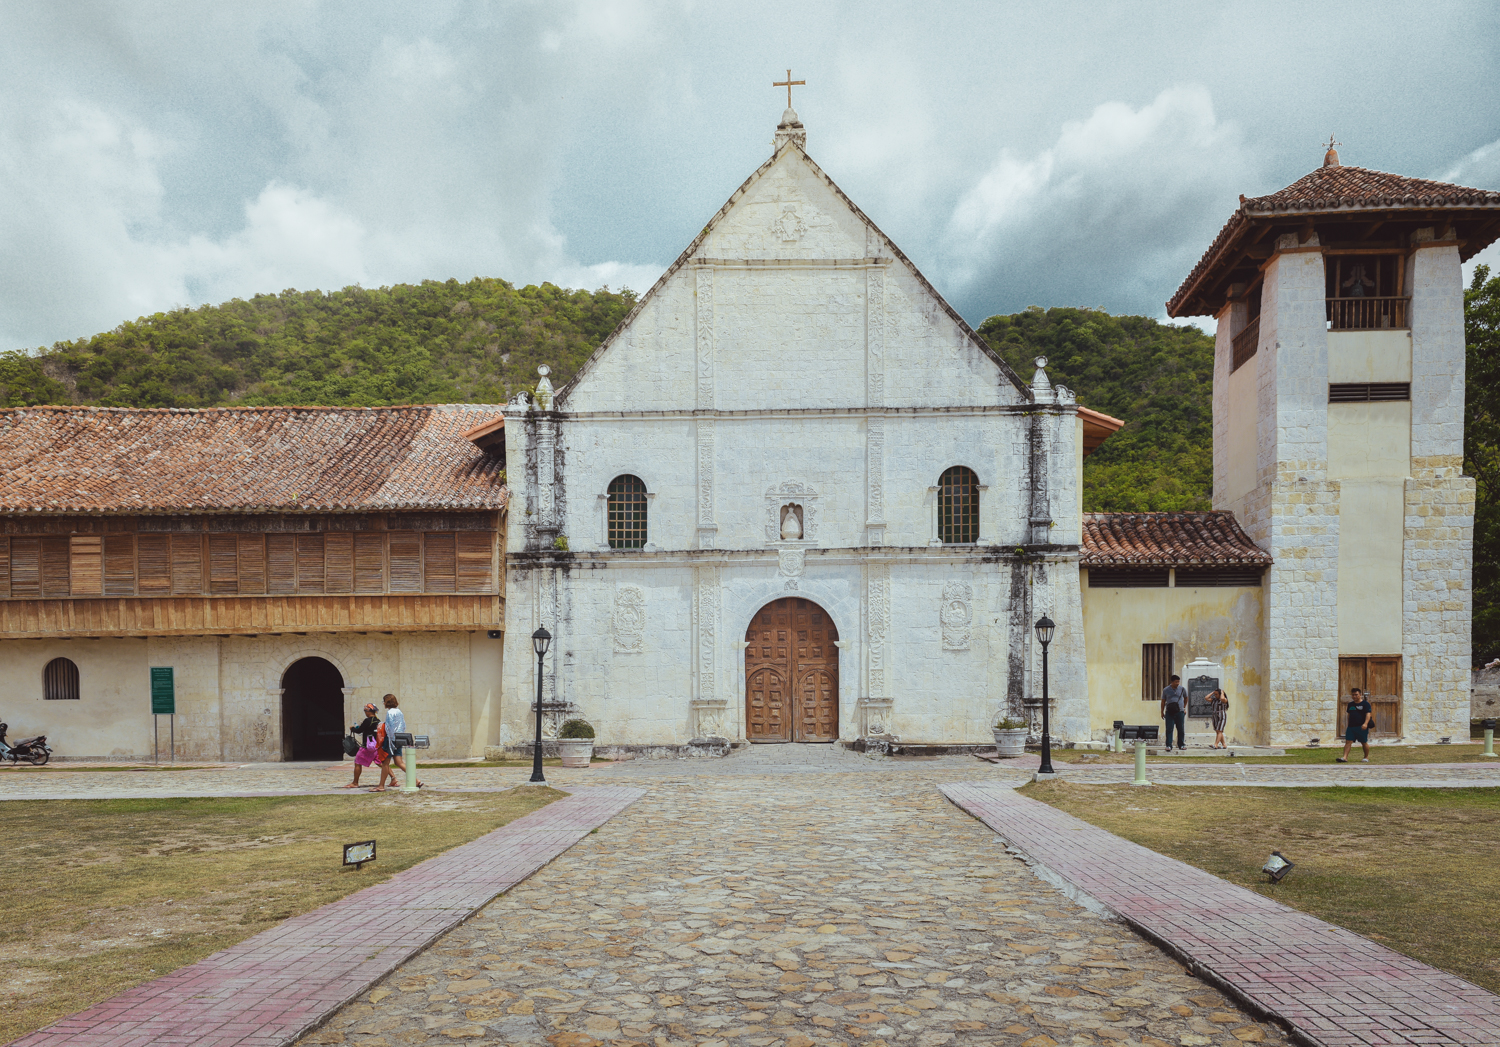 Boljoon Church, Boljoon, Philippines. Photo: Brad Chilby (https://chilby.com.au/). Photo©www.thingstodot.com.